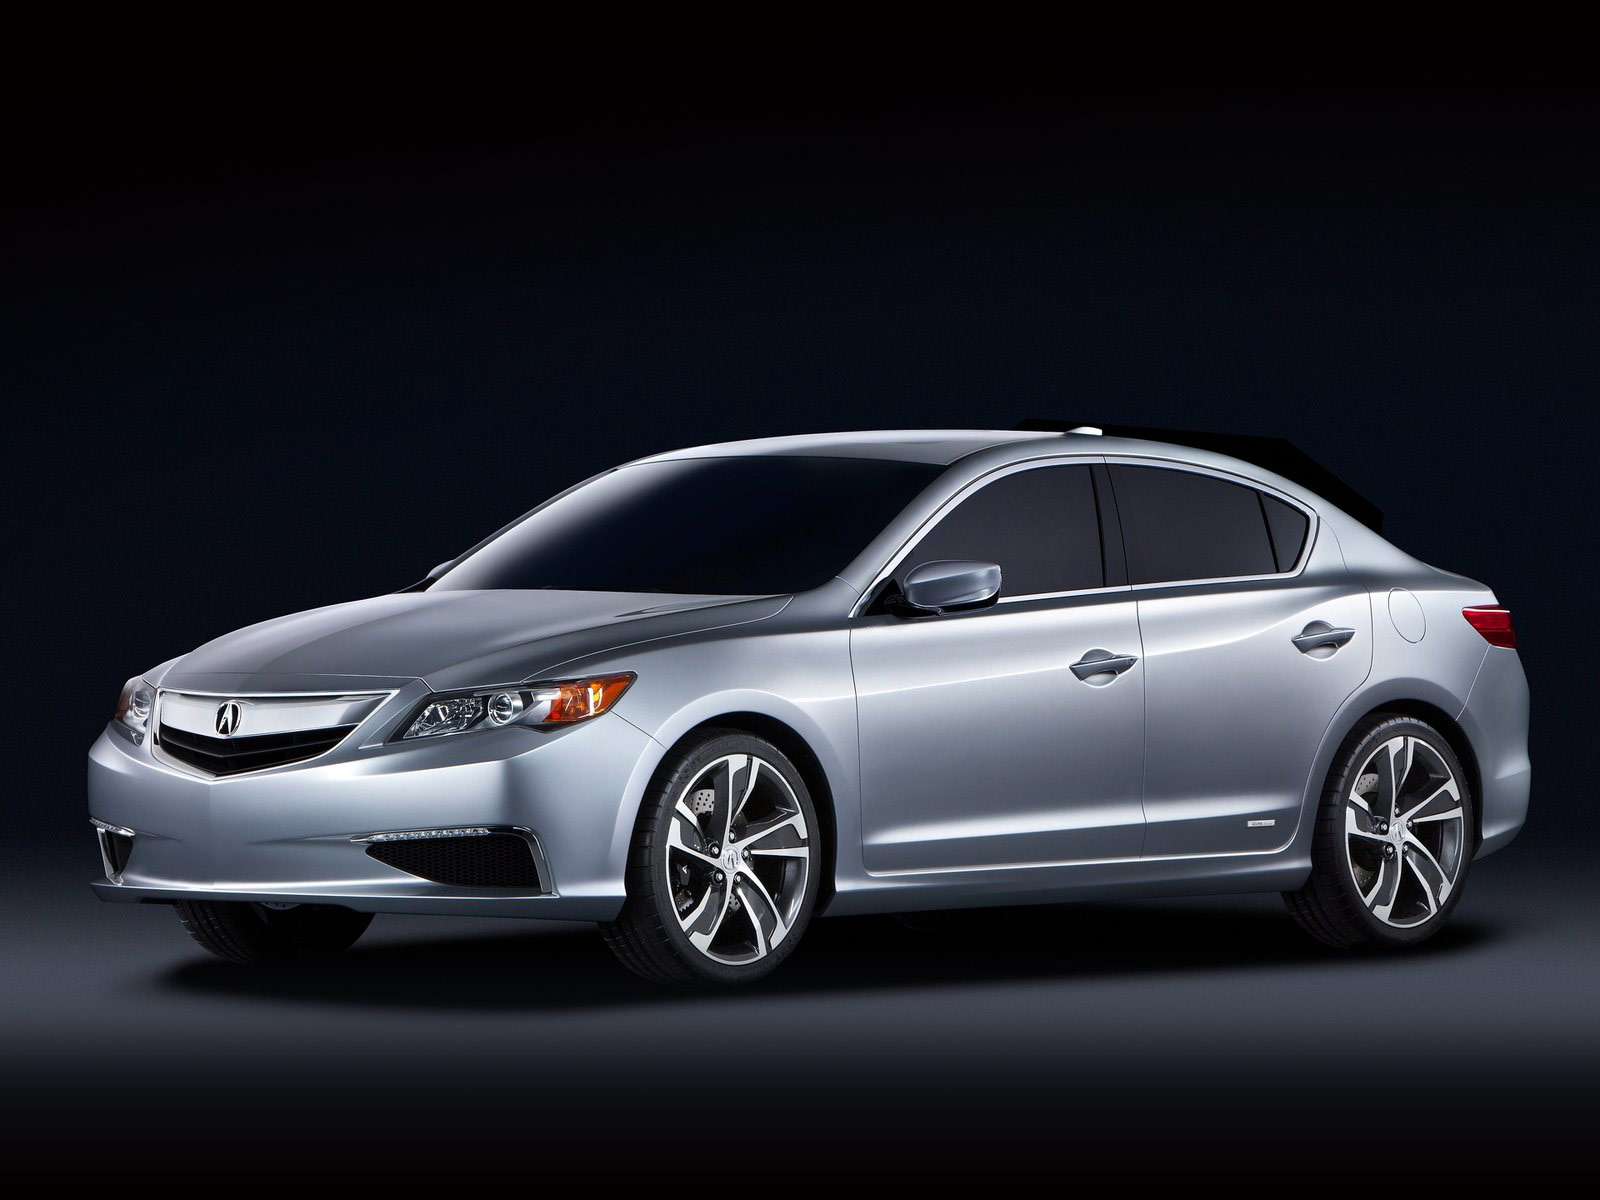 2012 acura ilx concept auto insurance information. Black Bedroom Furniture Sets. Home Design Ideas